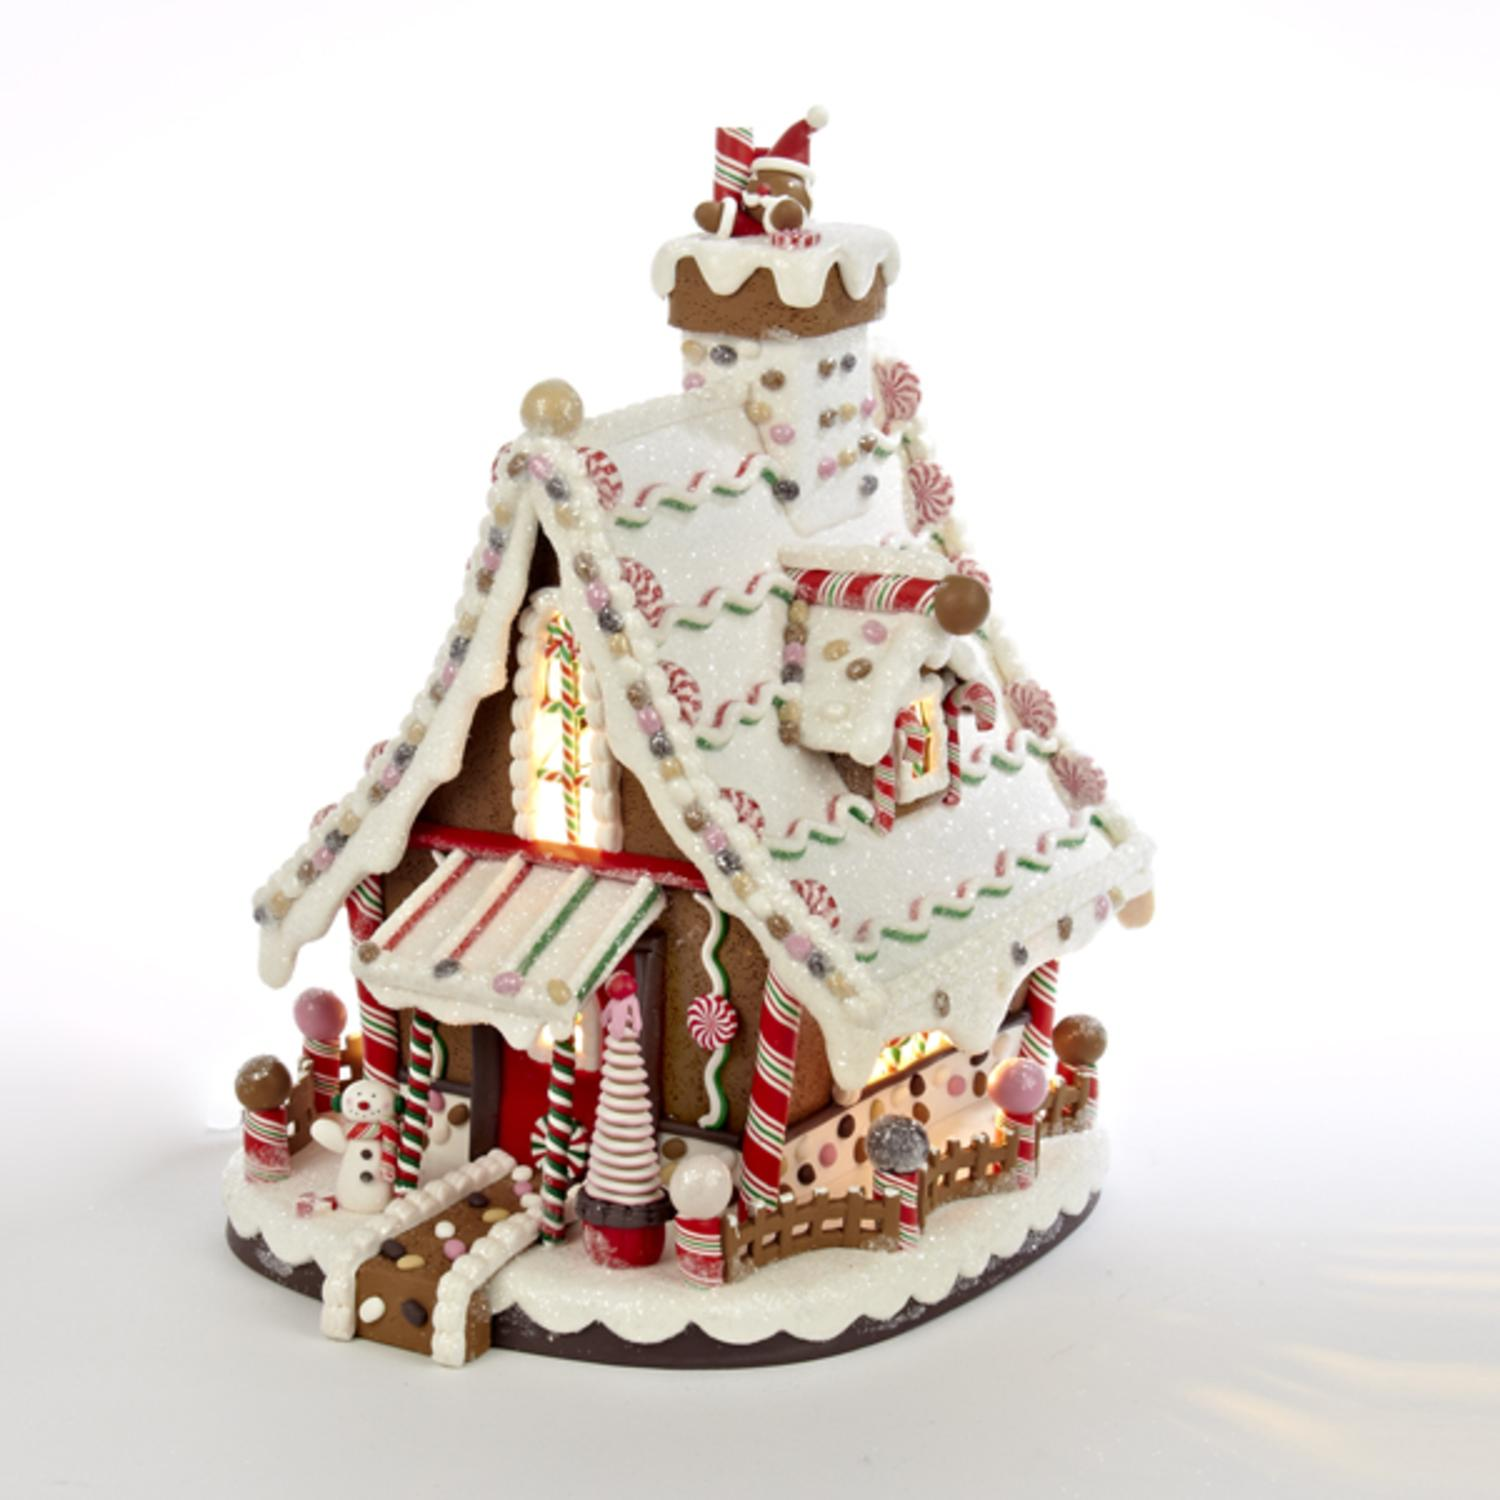 "12"" Lighted Candy-trimmed Gingerbread House Table Top Christmas Decoration"